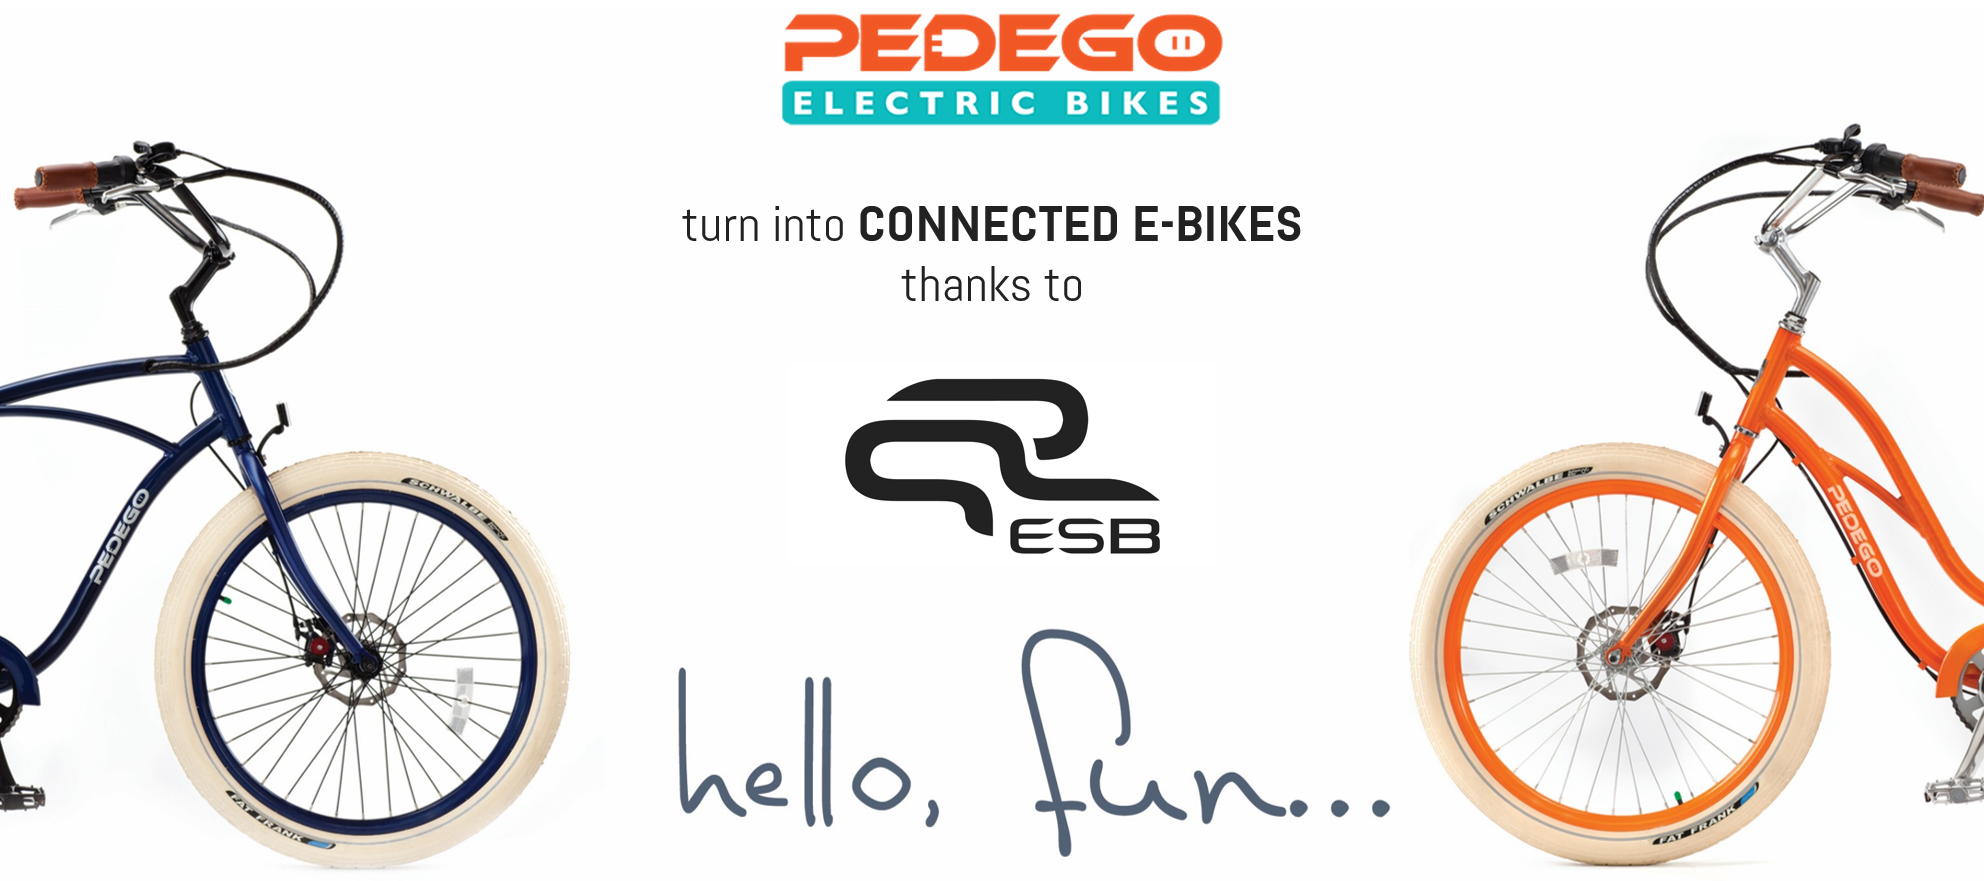 ESB_PEDEGO_Connected e-Bikes